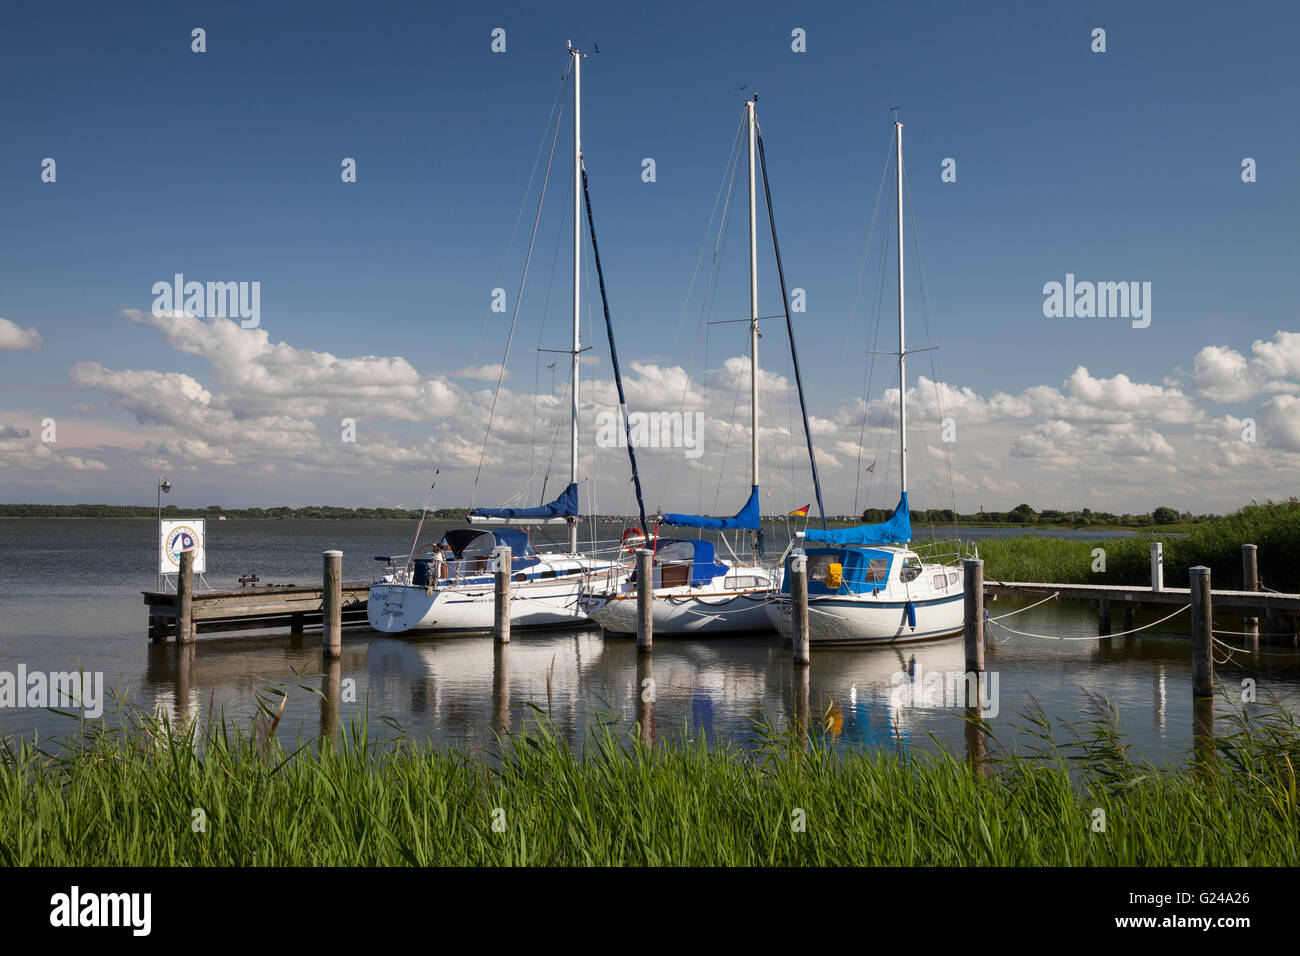 Rest area for boaters at the Bodden, Dierhagen-Dorf, Mecklenburg-Vorpommern, Germany - Stock Image